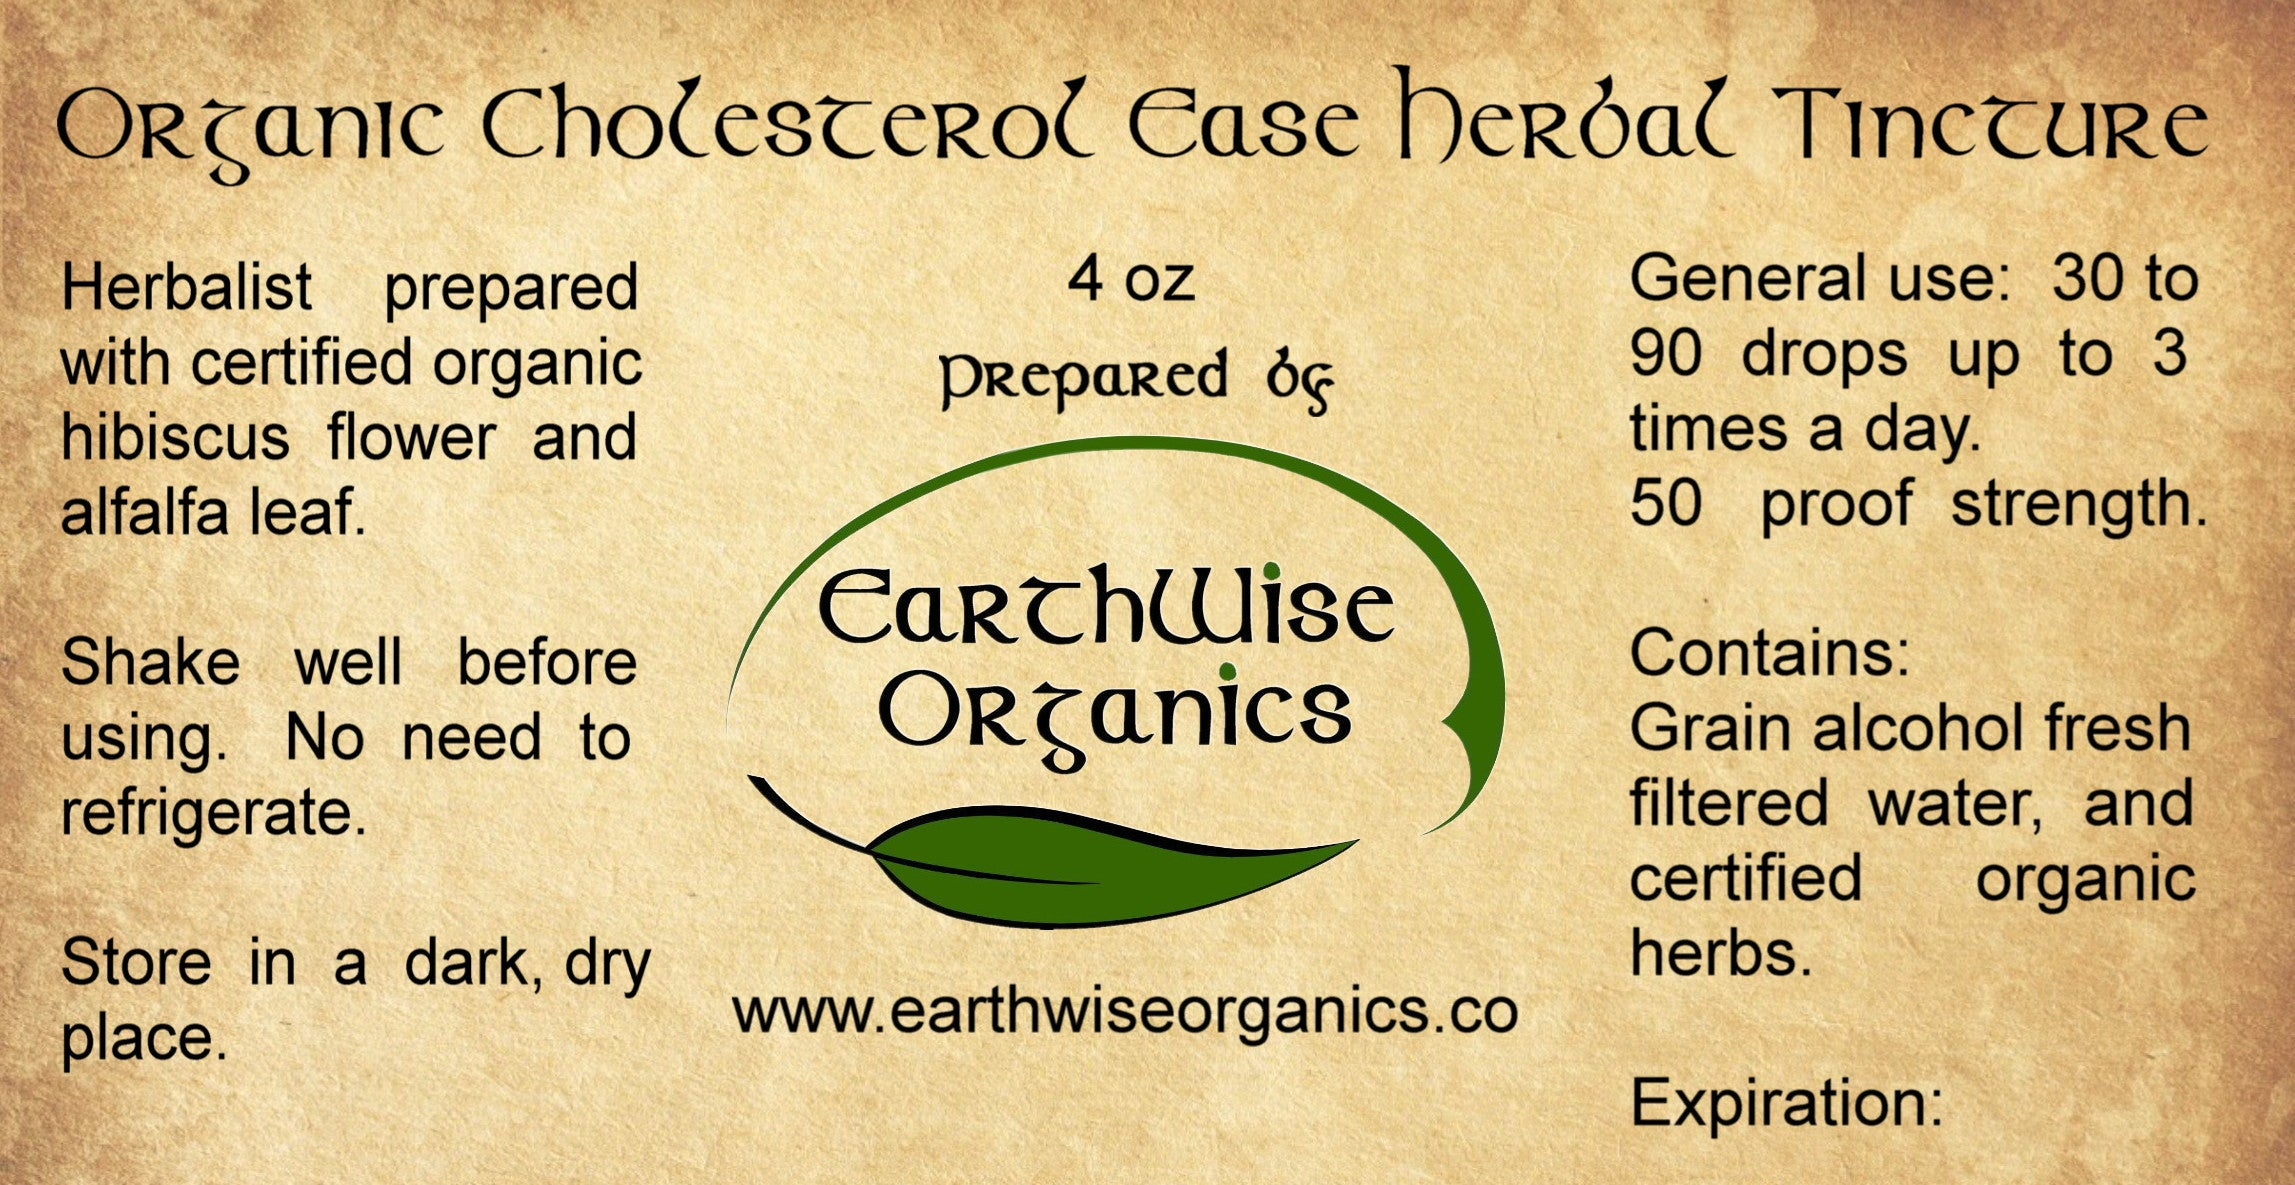 cholesterol ease organic herbal tincture label